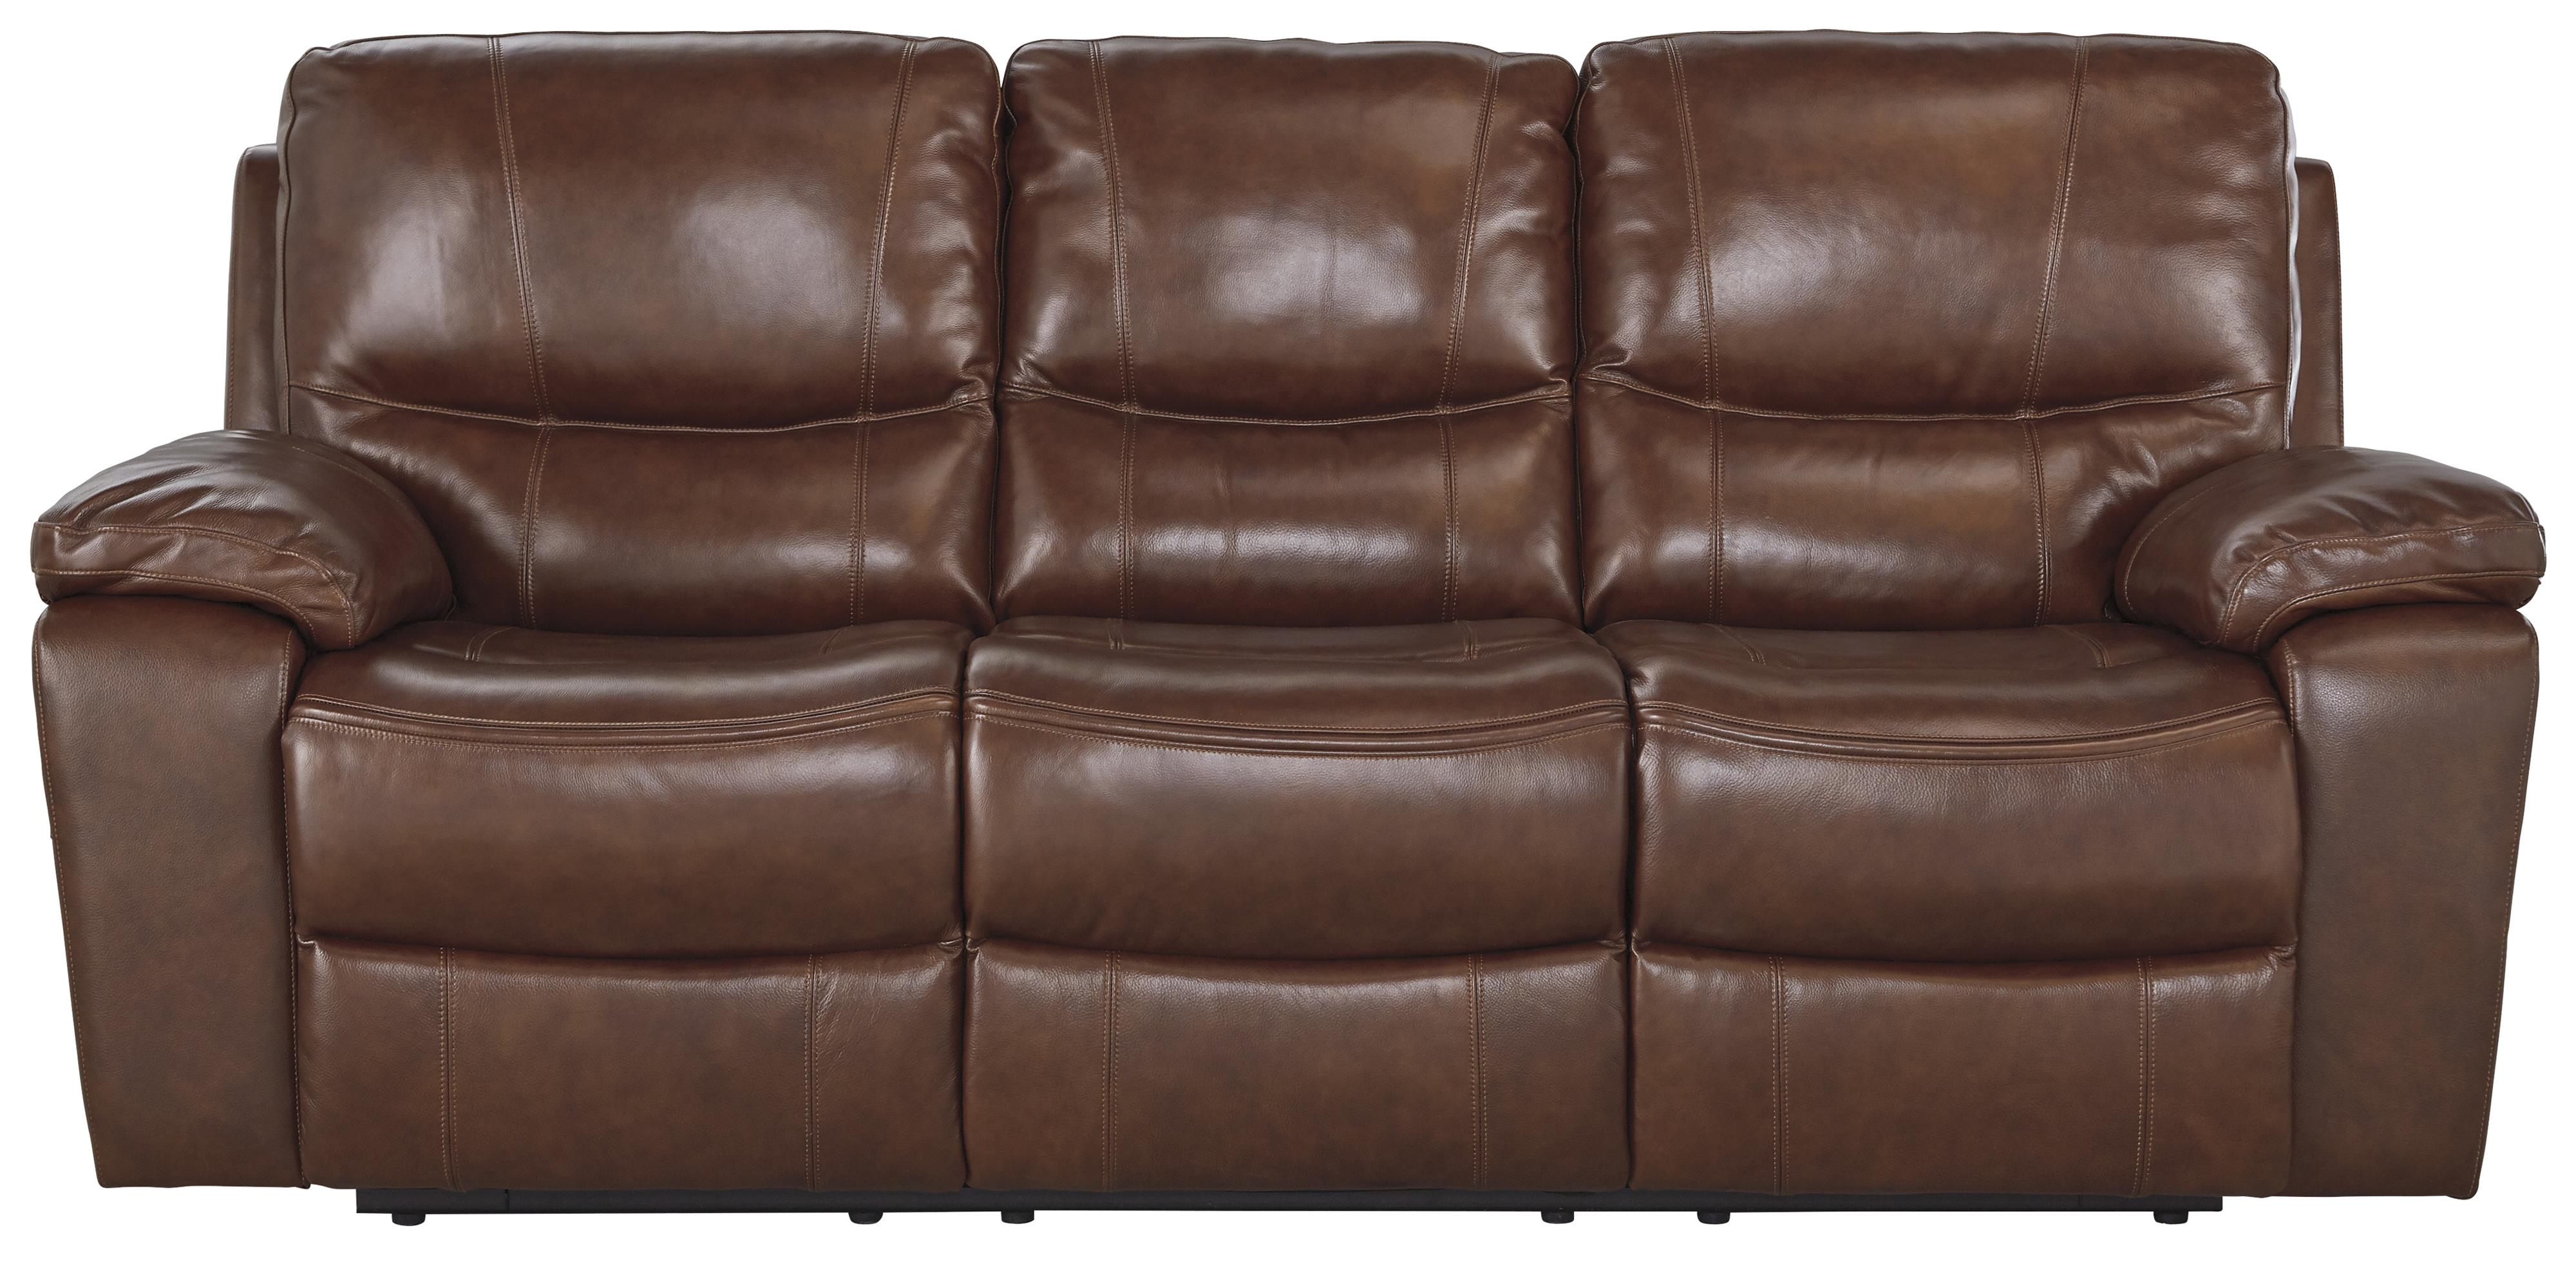 Signature Design by Ashley Panache Reclining Power Sofa - Item Number: U7290087